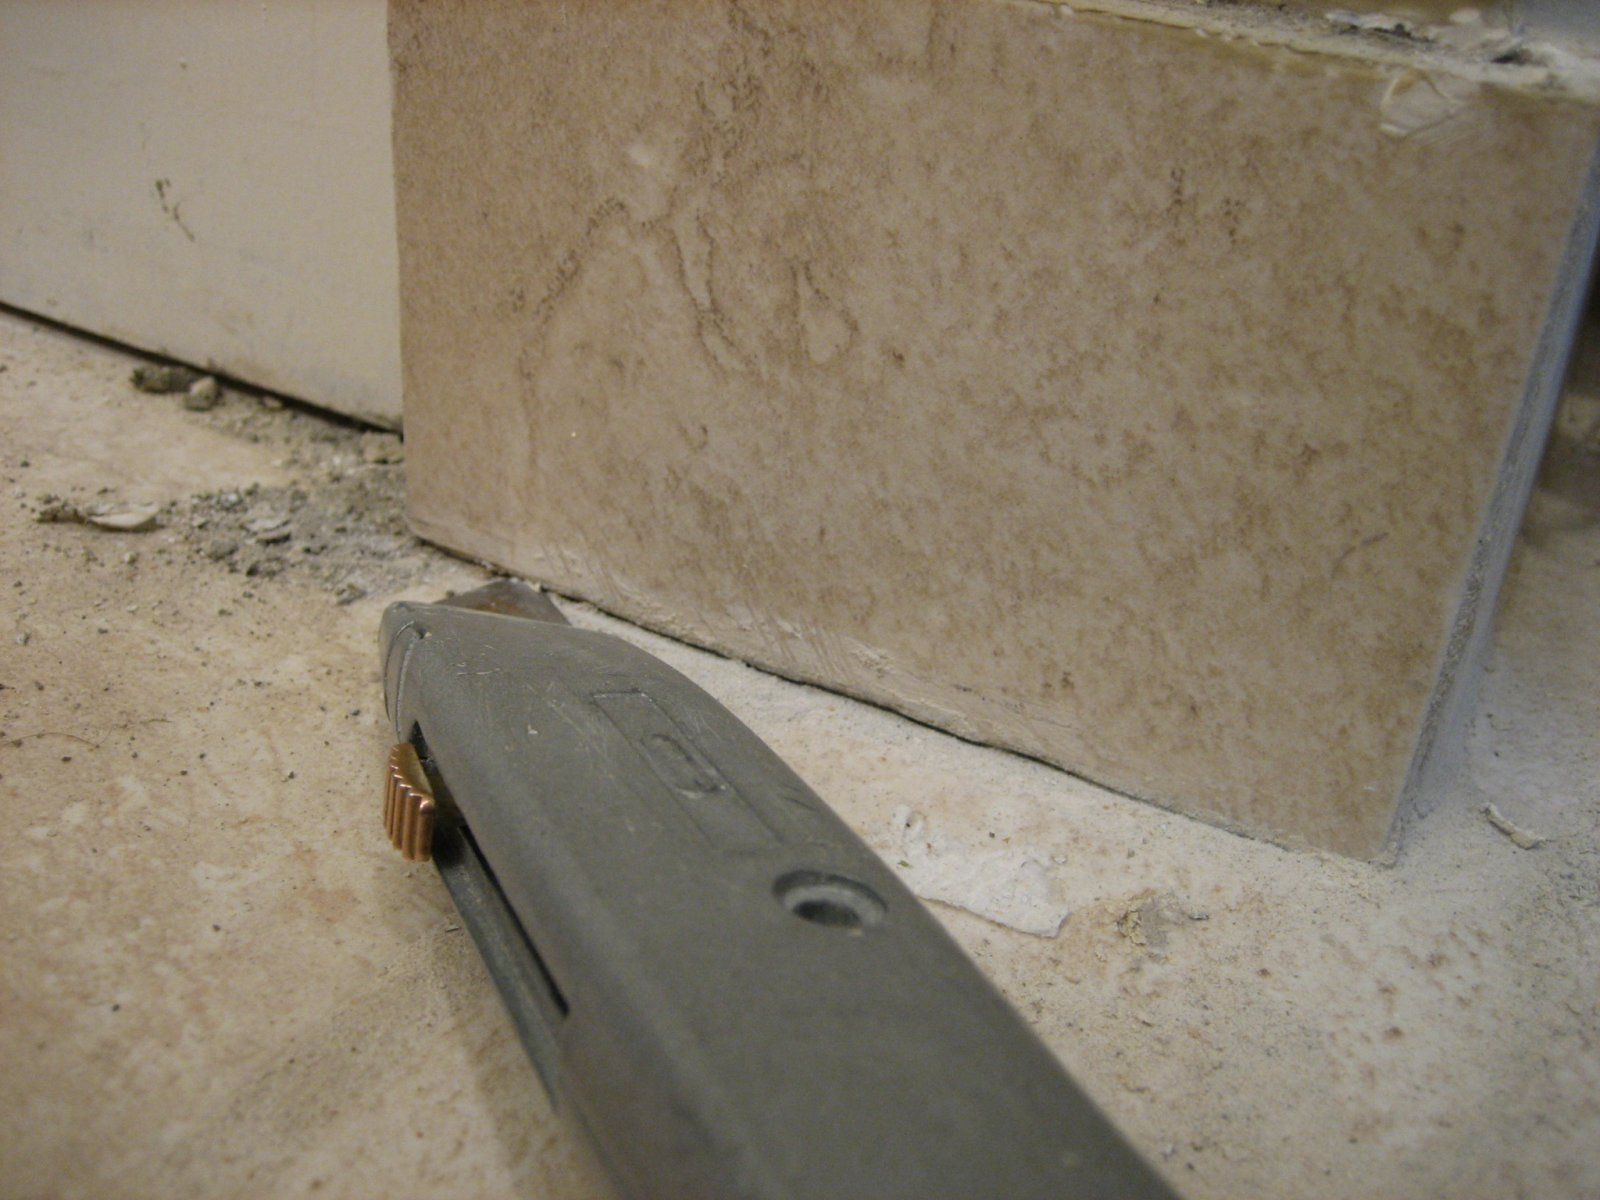 How to remove floor tiles without breaking them choice image how to remove ceramic tile from concrete floor without breaking removing ceramic tiles without breaking them doublecrazyfo Gallery